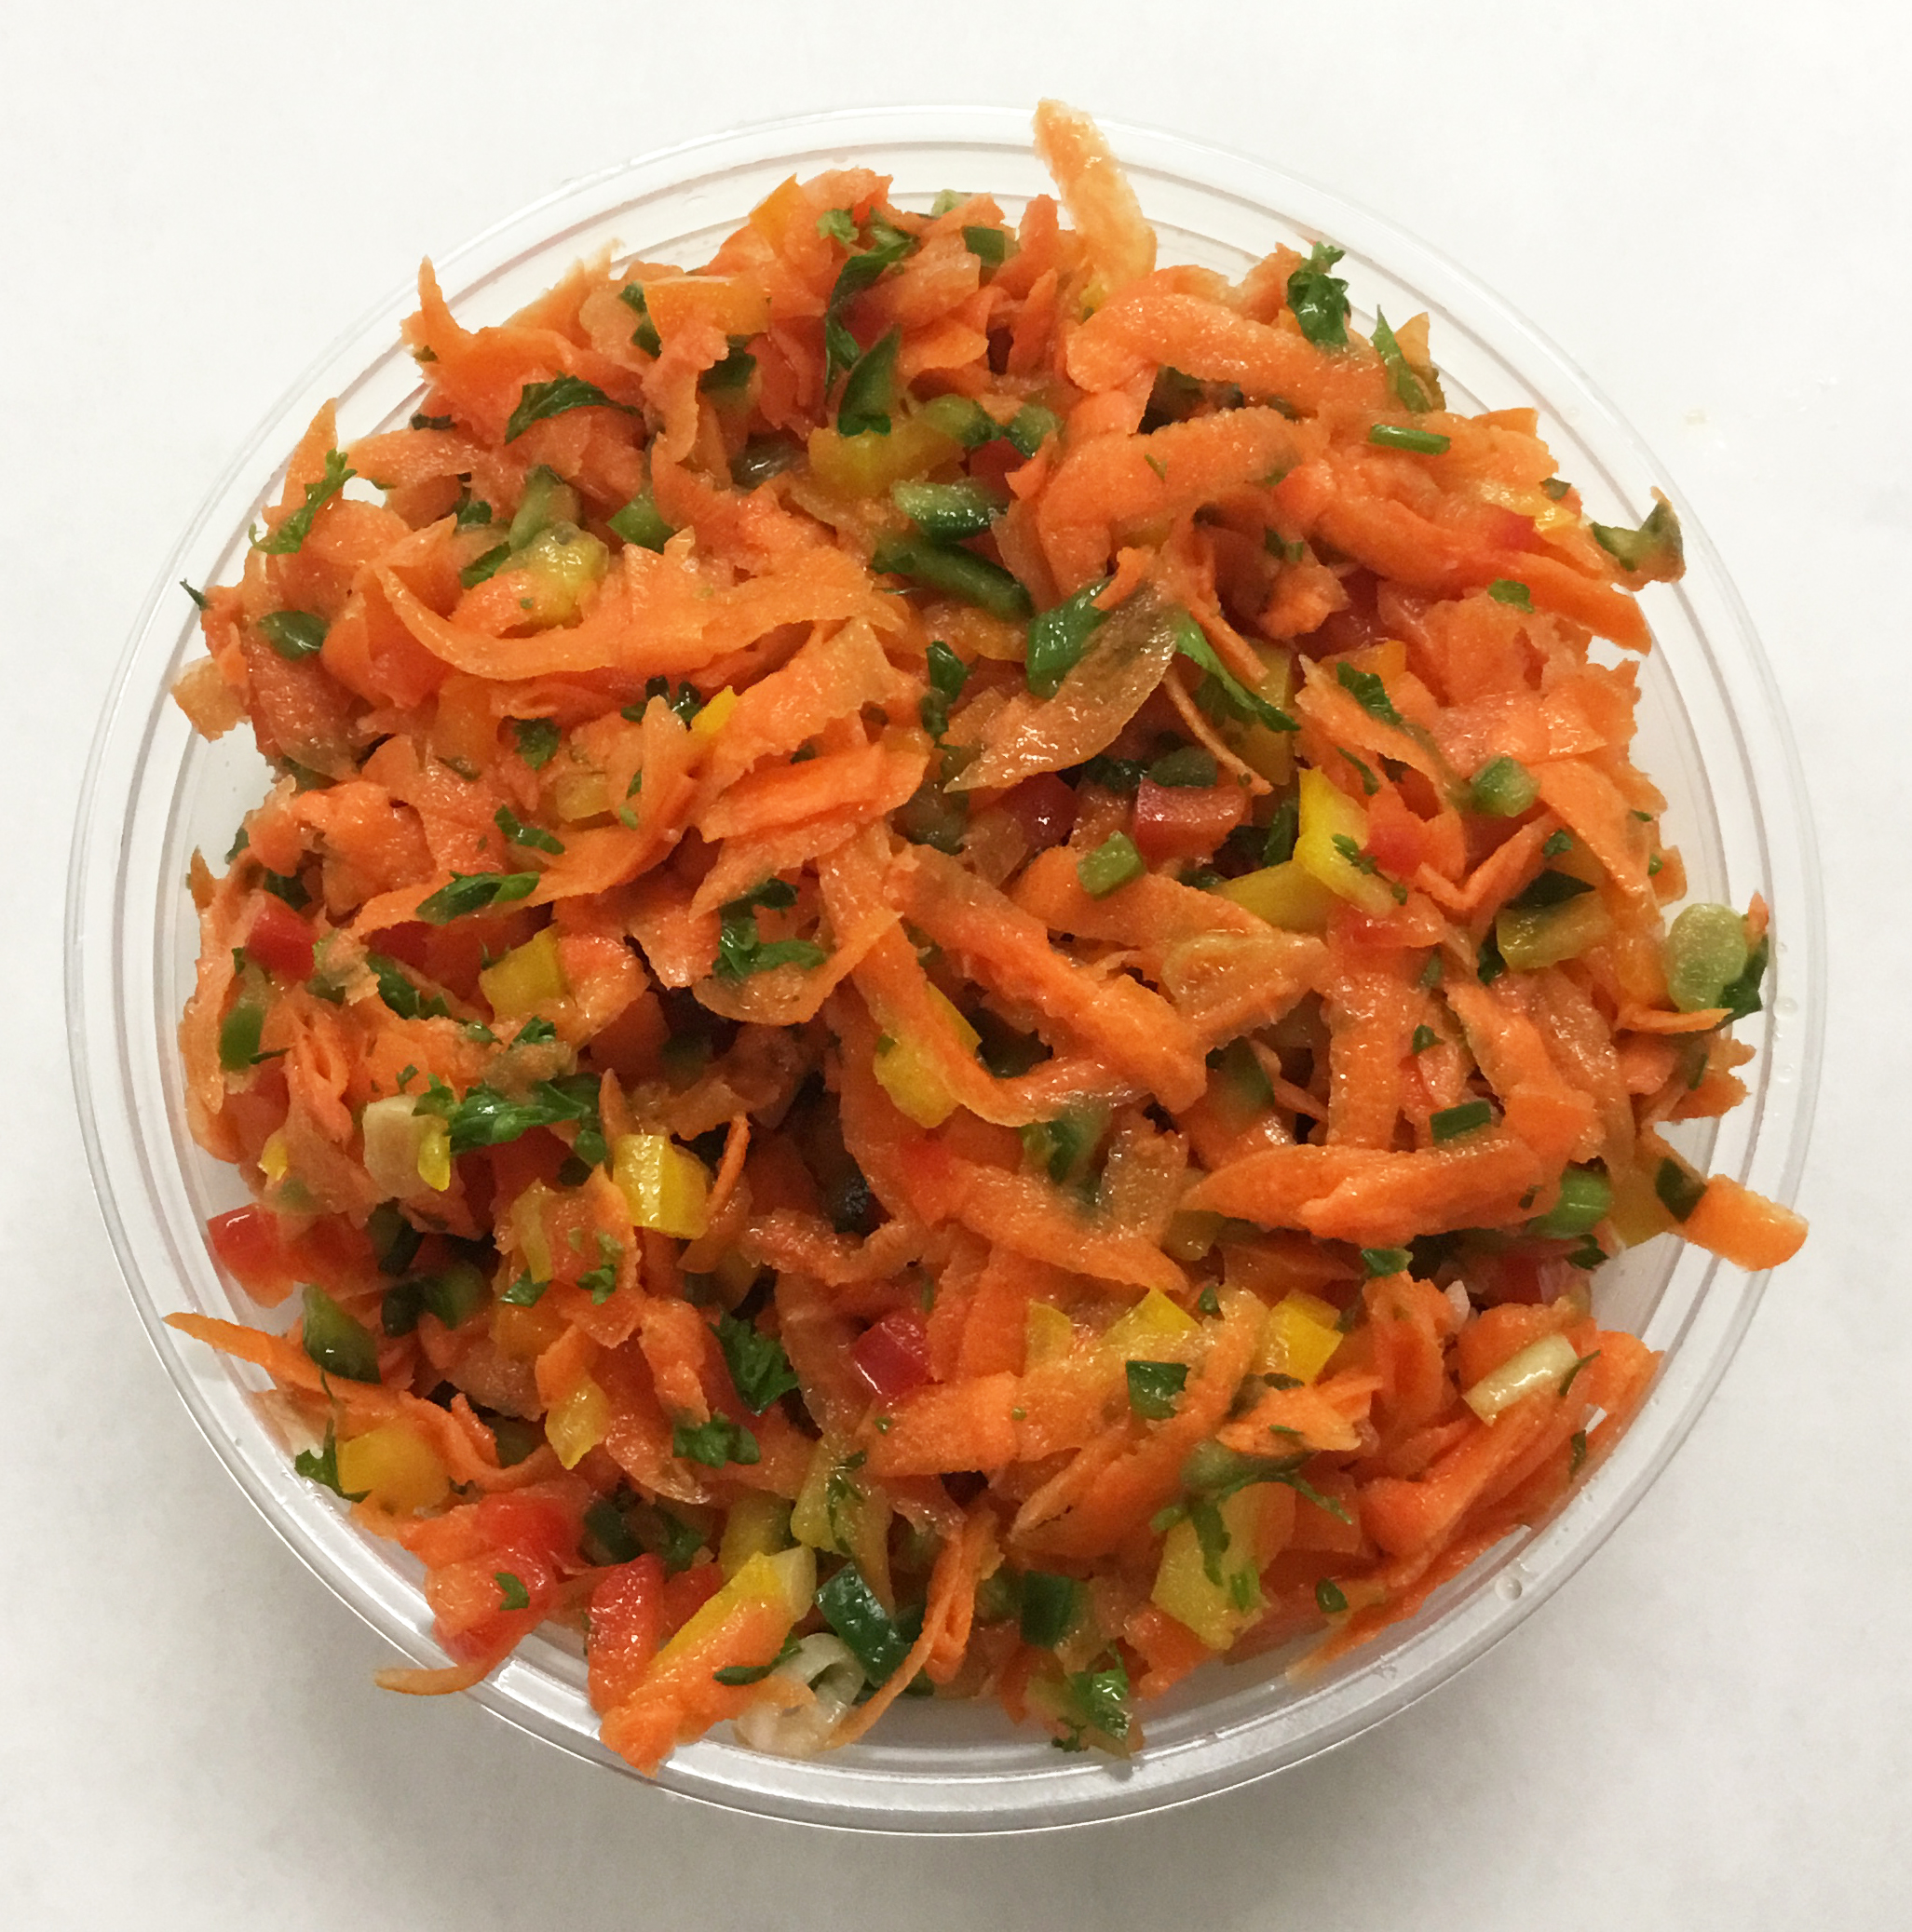 Carrot salsa with bell, Seranno and Anaheim peppers, scallions, apple cider vinegar and fresh squeezed orange juice.